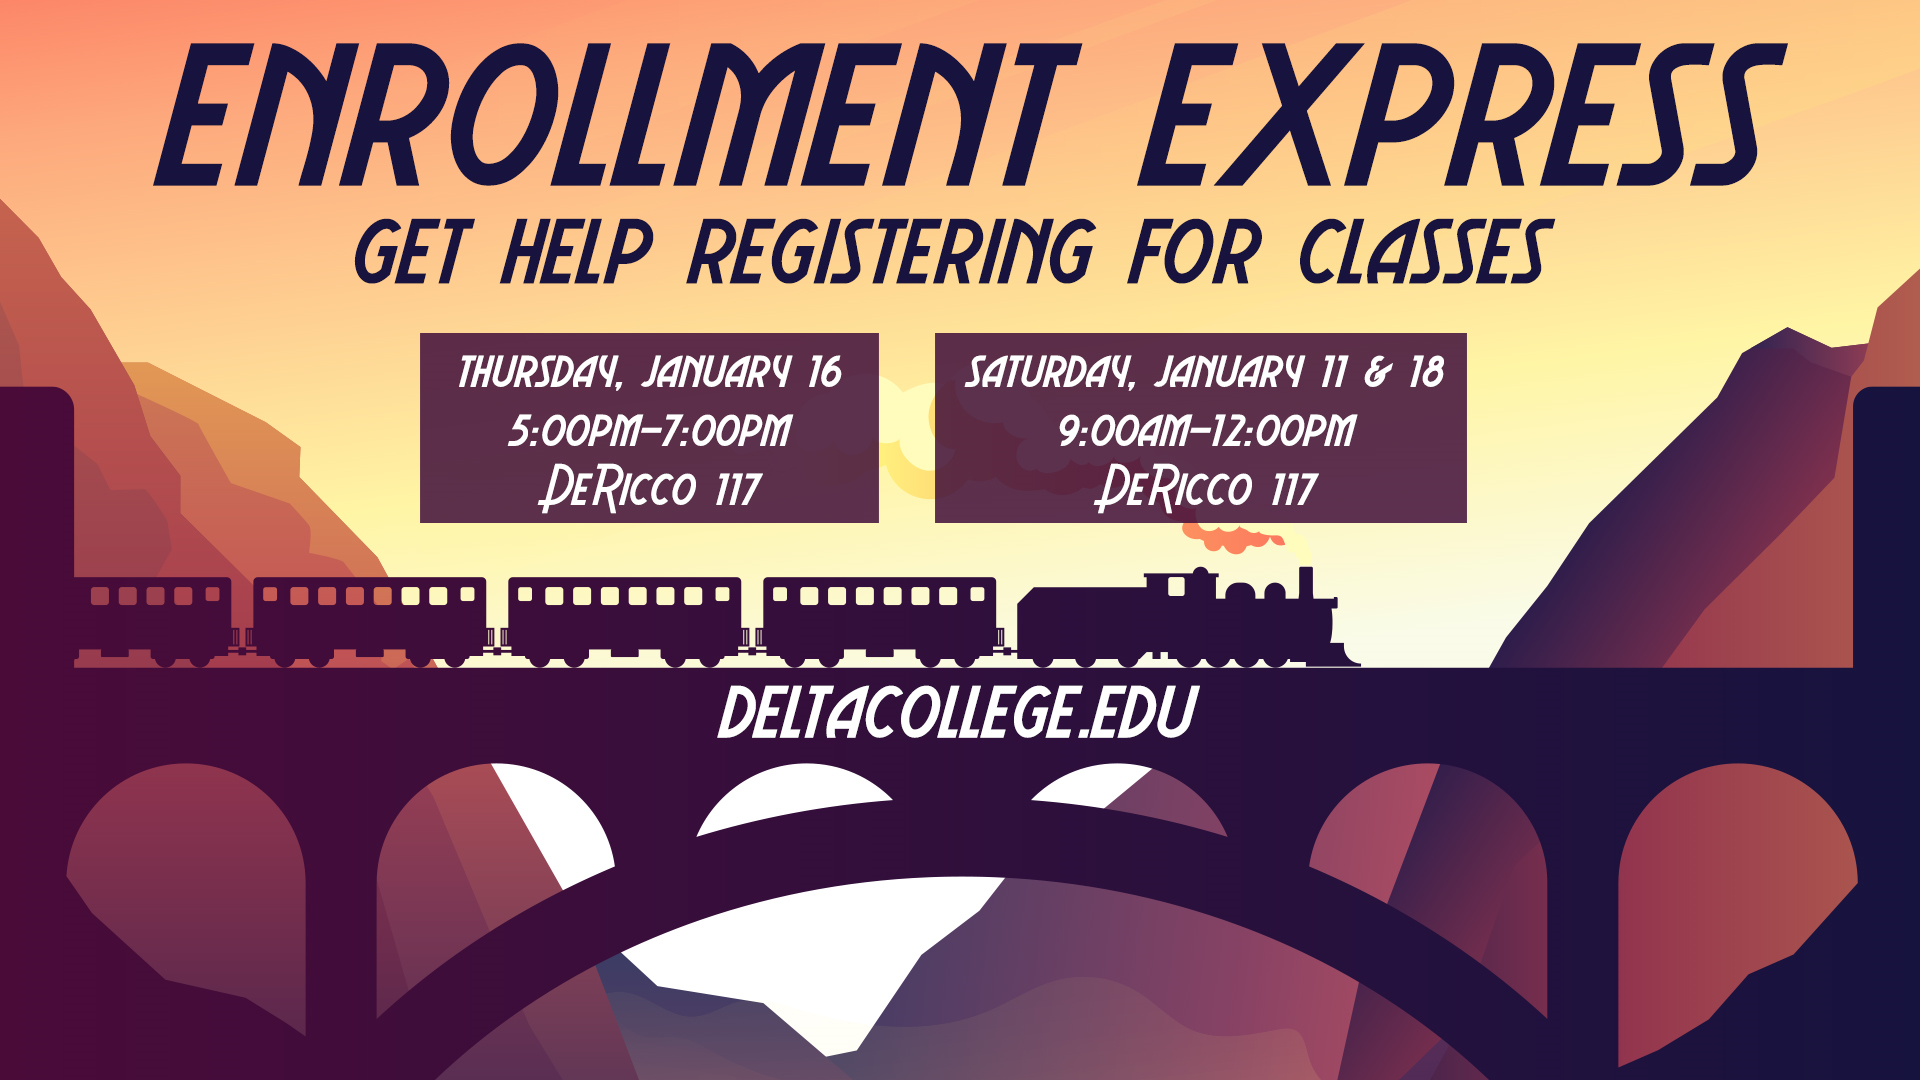 Enrollment Express Train Image